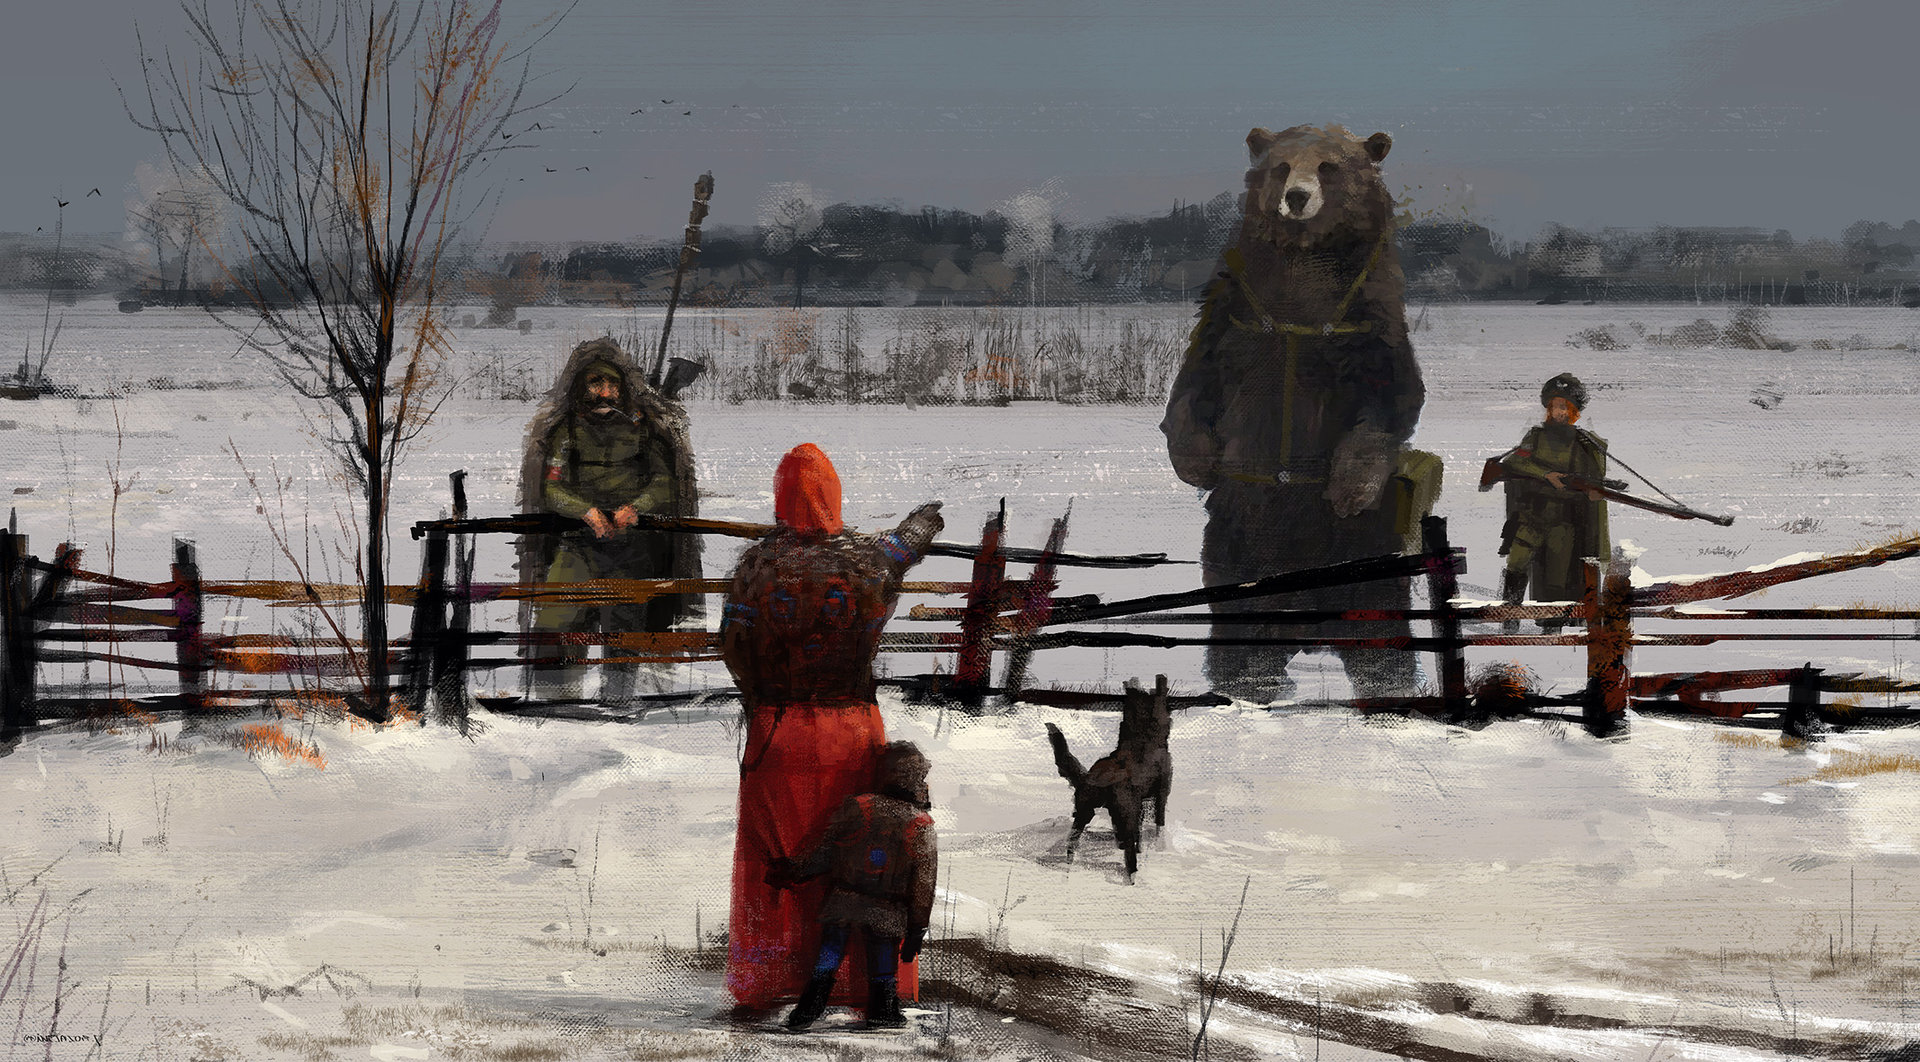 Jakub_Rozalski_-_1920 strange visitors